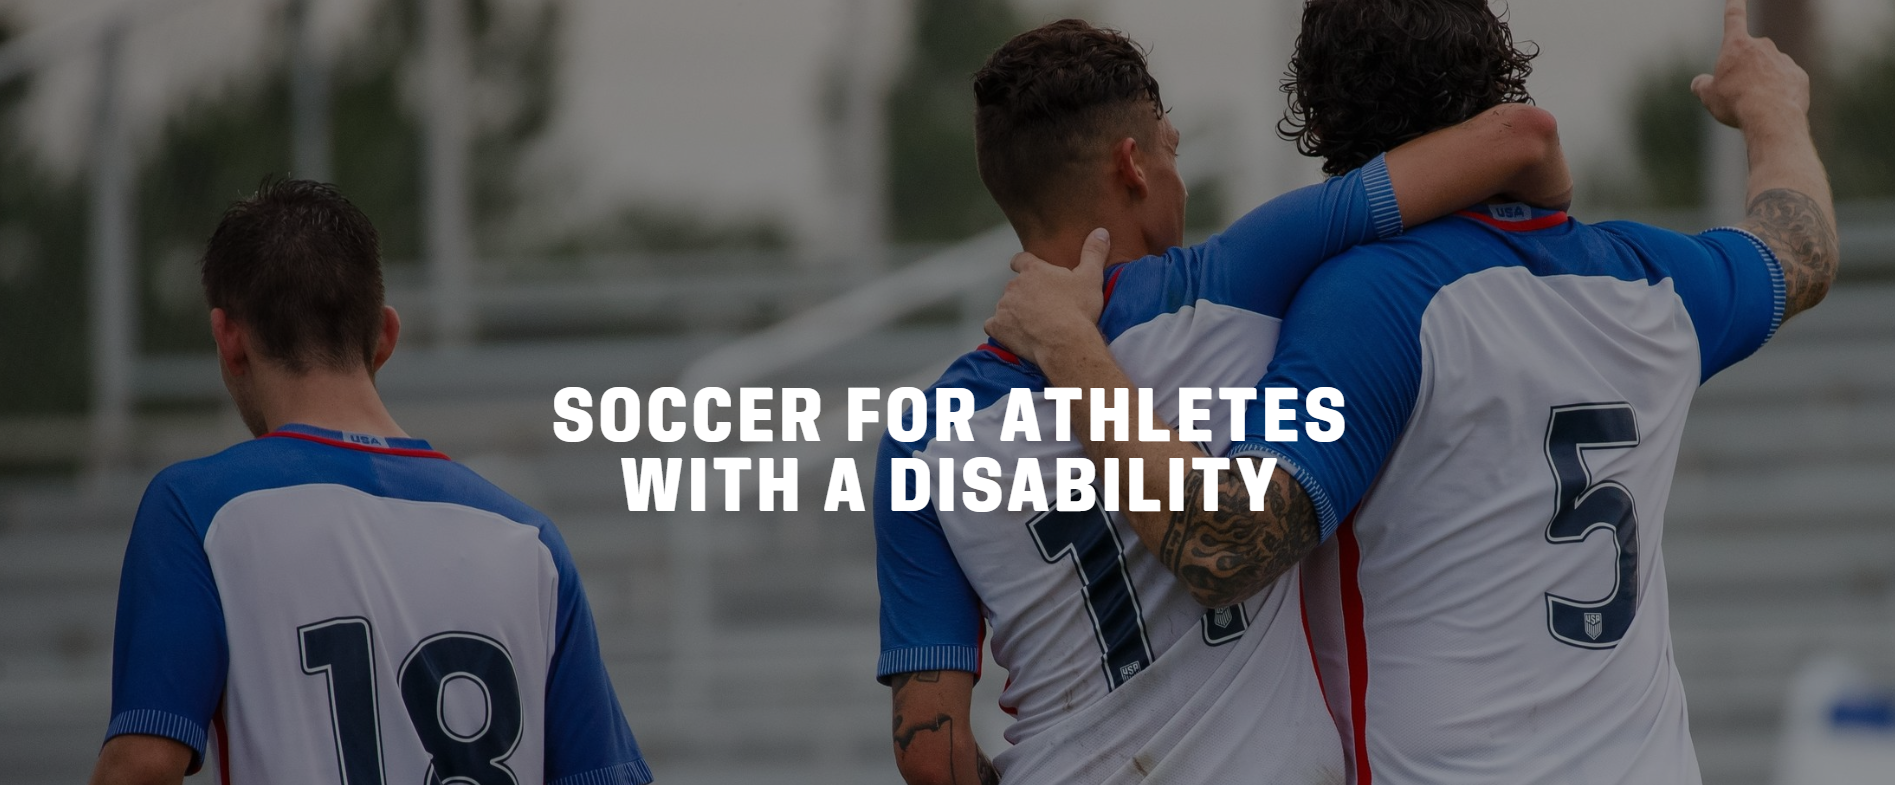 Athletes_With_Disability